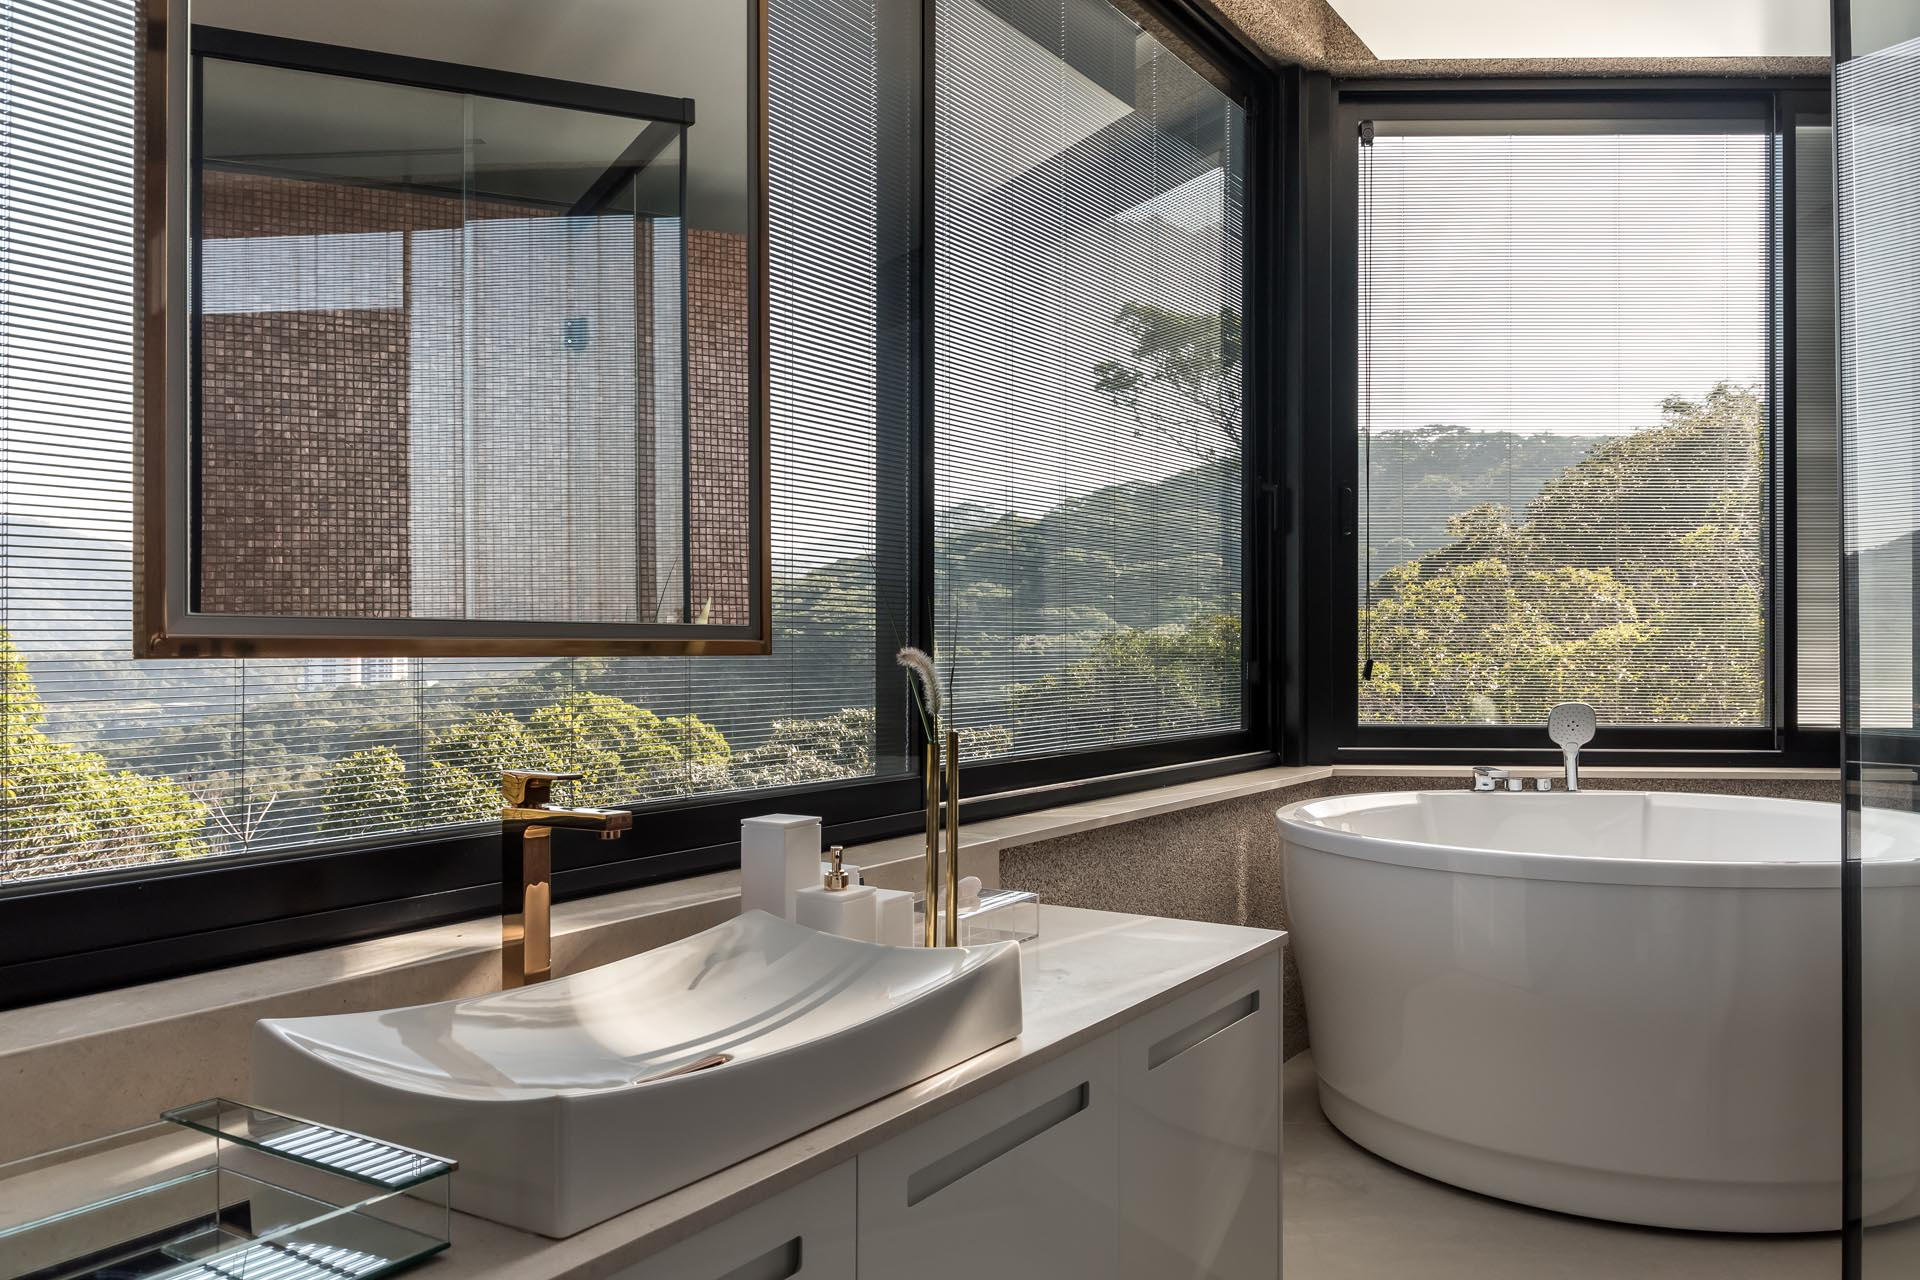 This bathroom has plenty of windows to maximize the views for the deep soaking tub and vanity area.